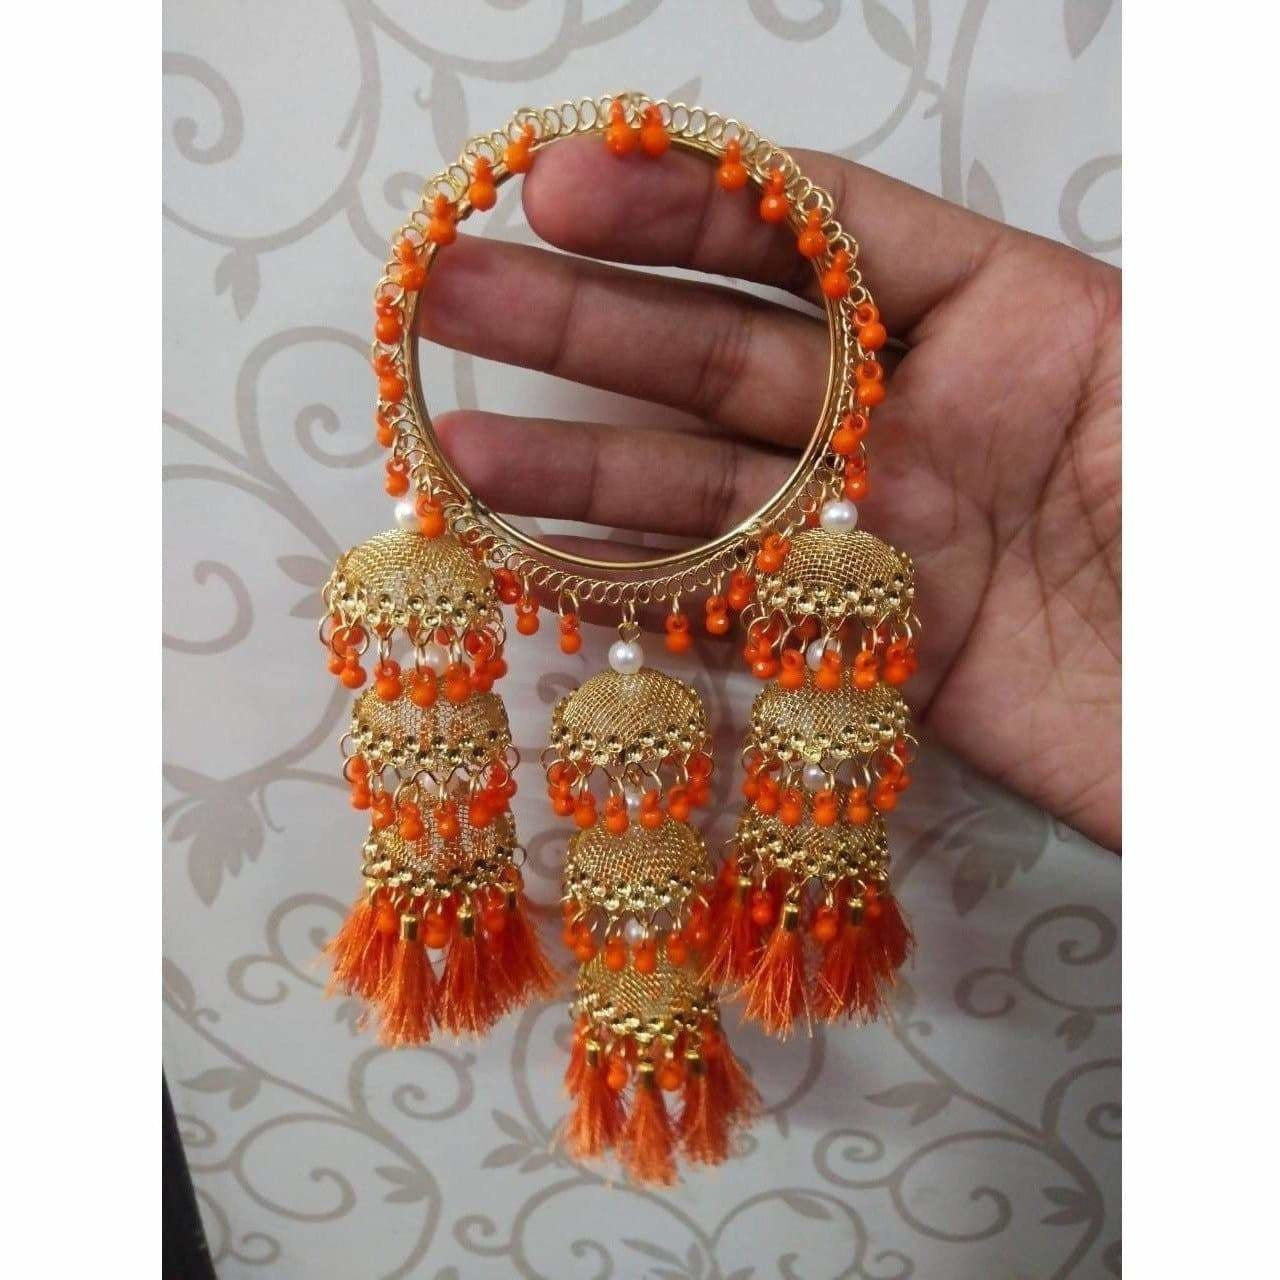 Stylish Gold Color Hanging Jhumka Bangles With Pearls, Threads